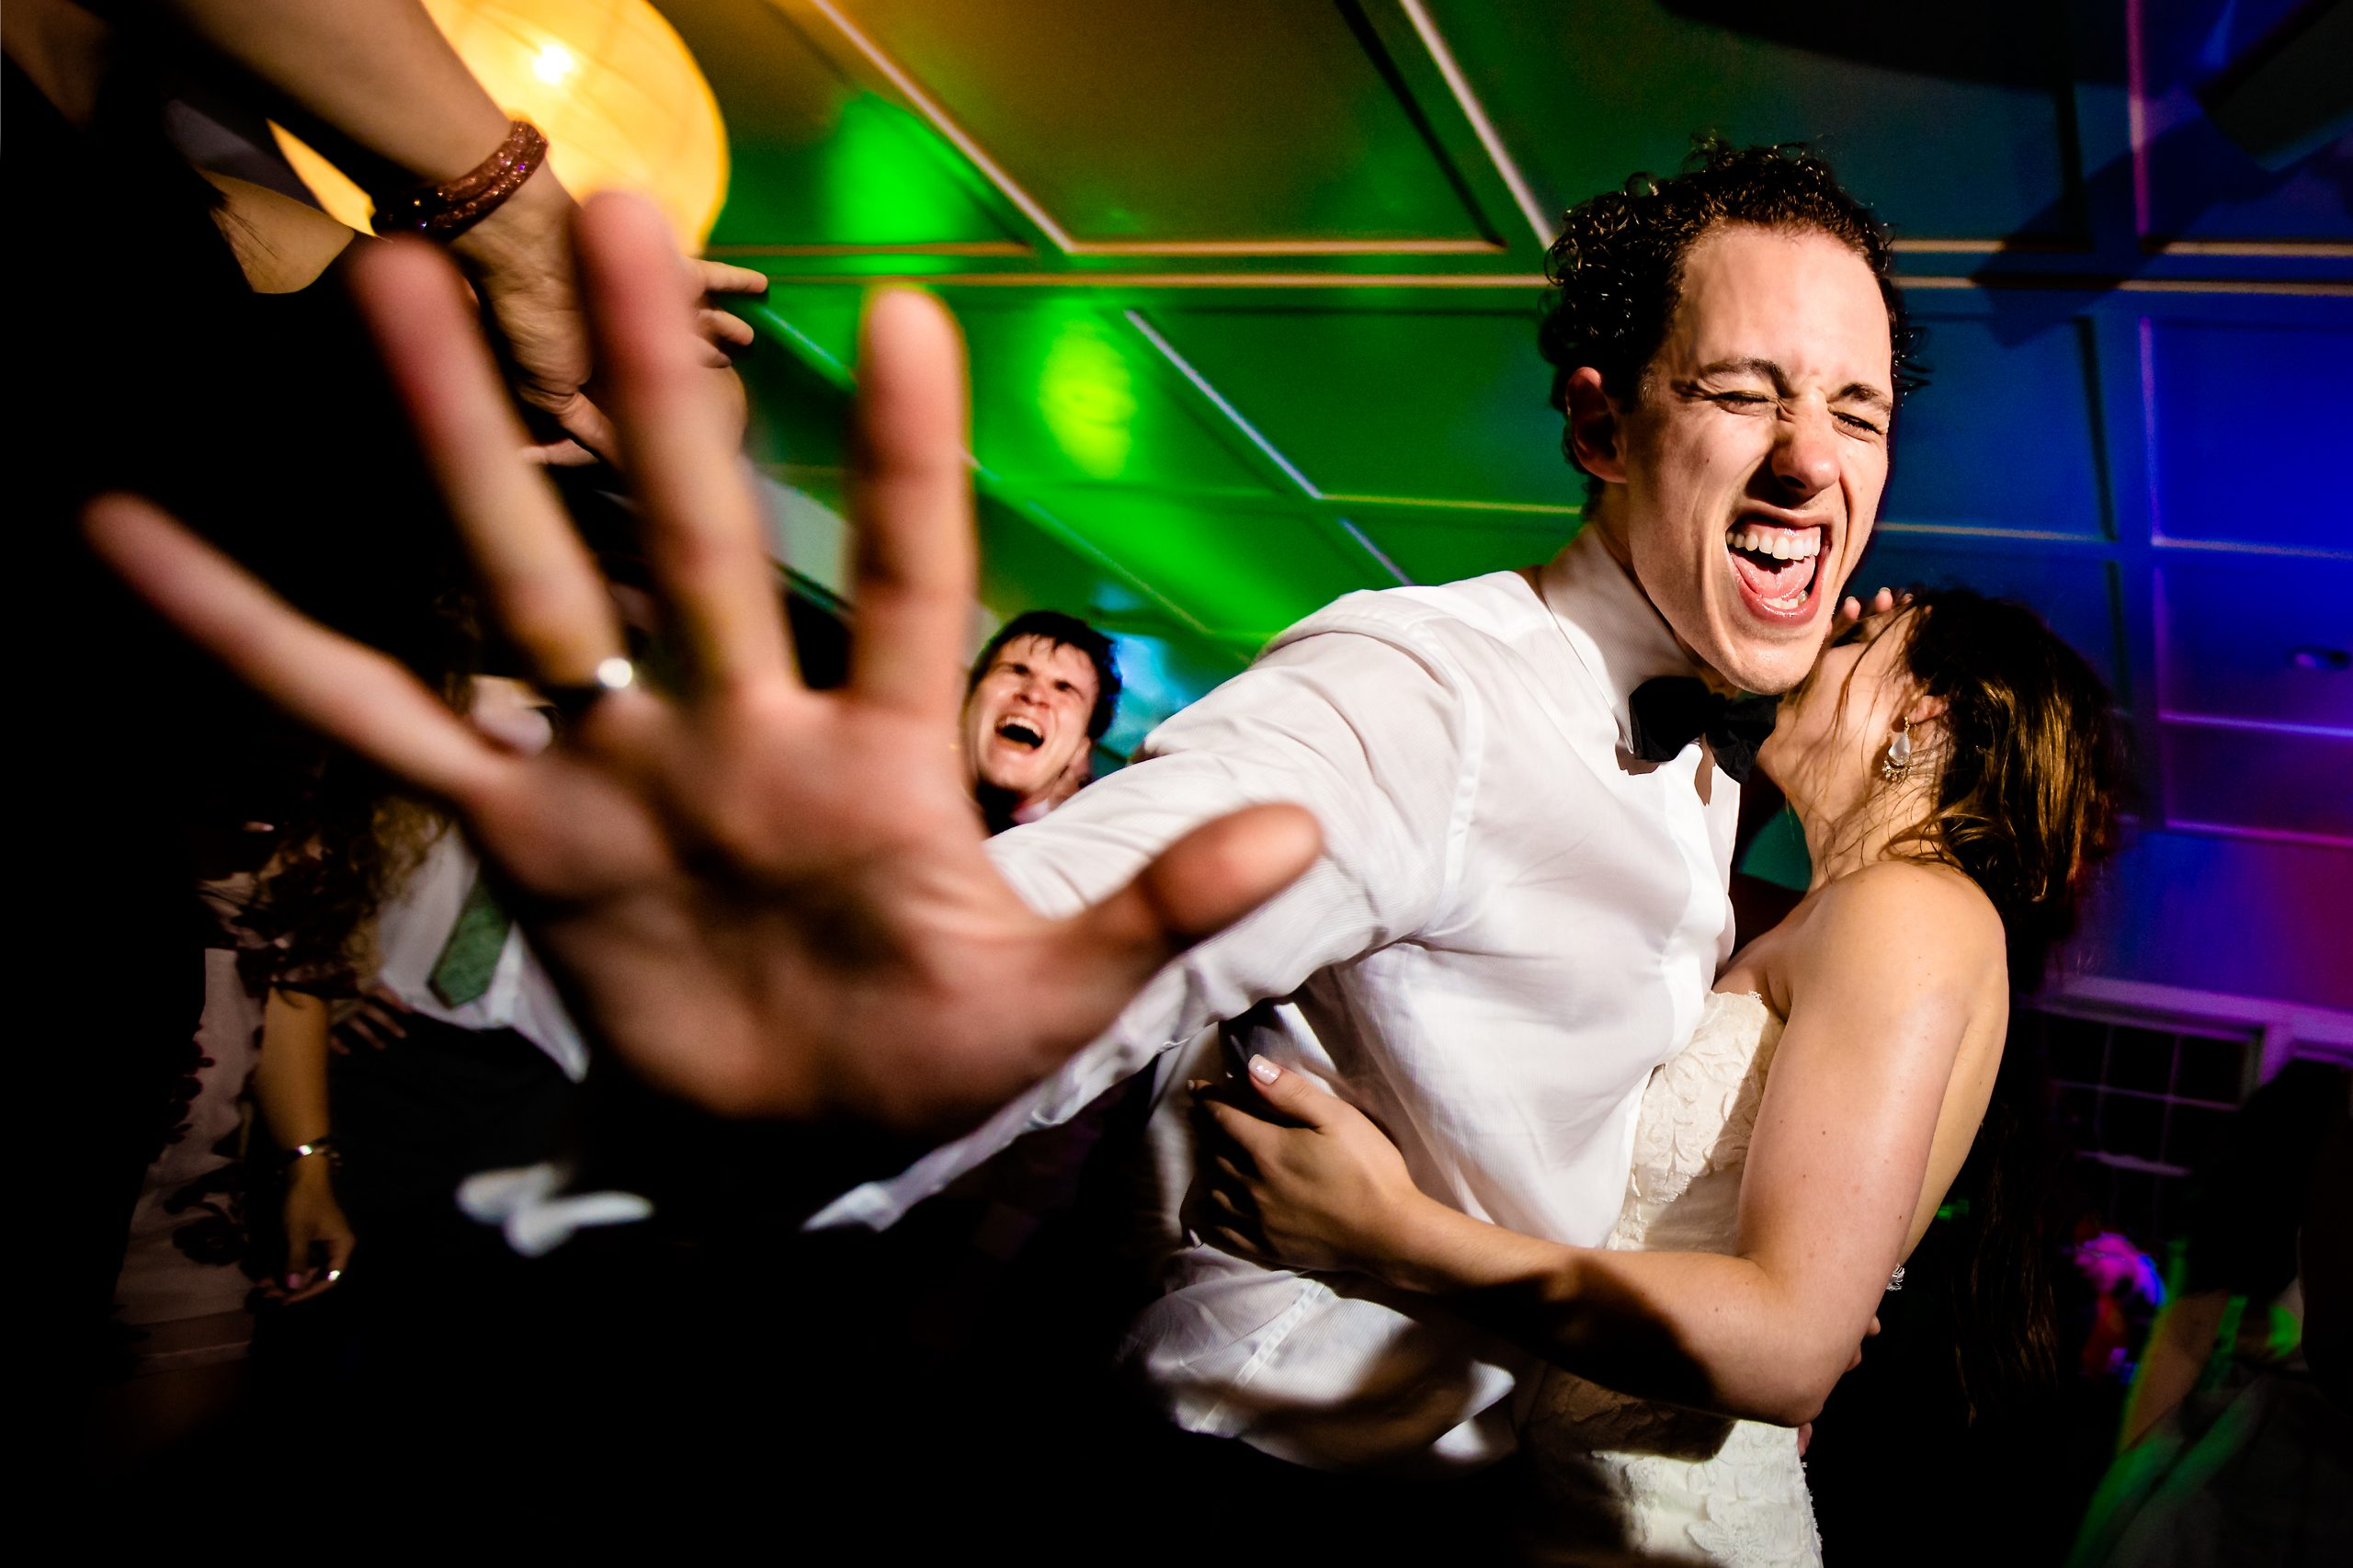 Groom dances passionately with bride at the wedding reception